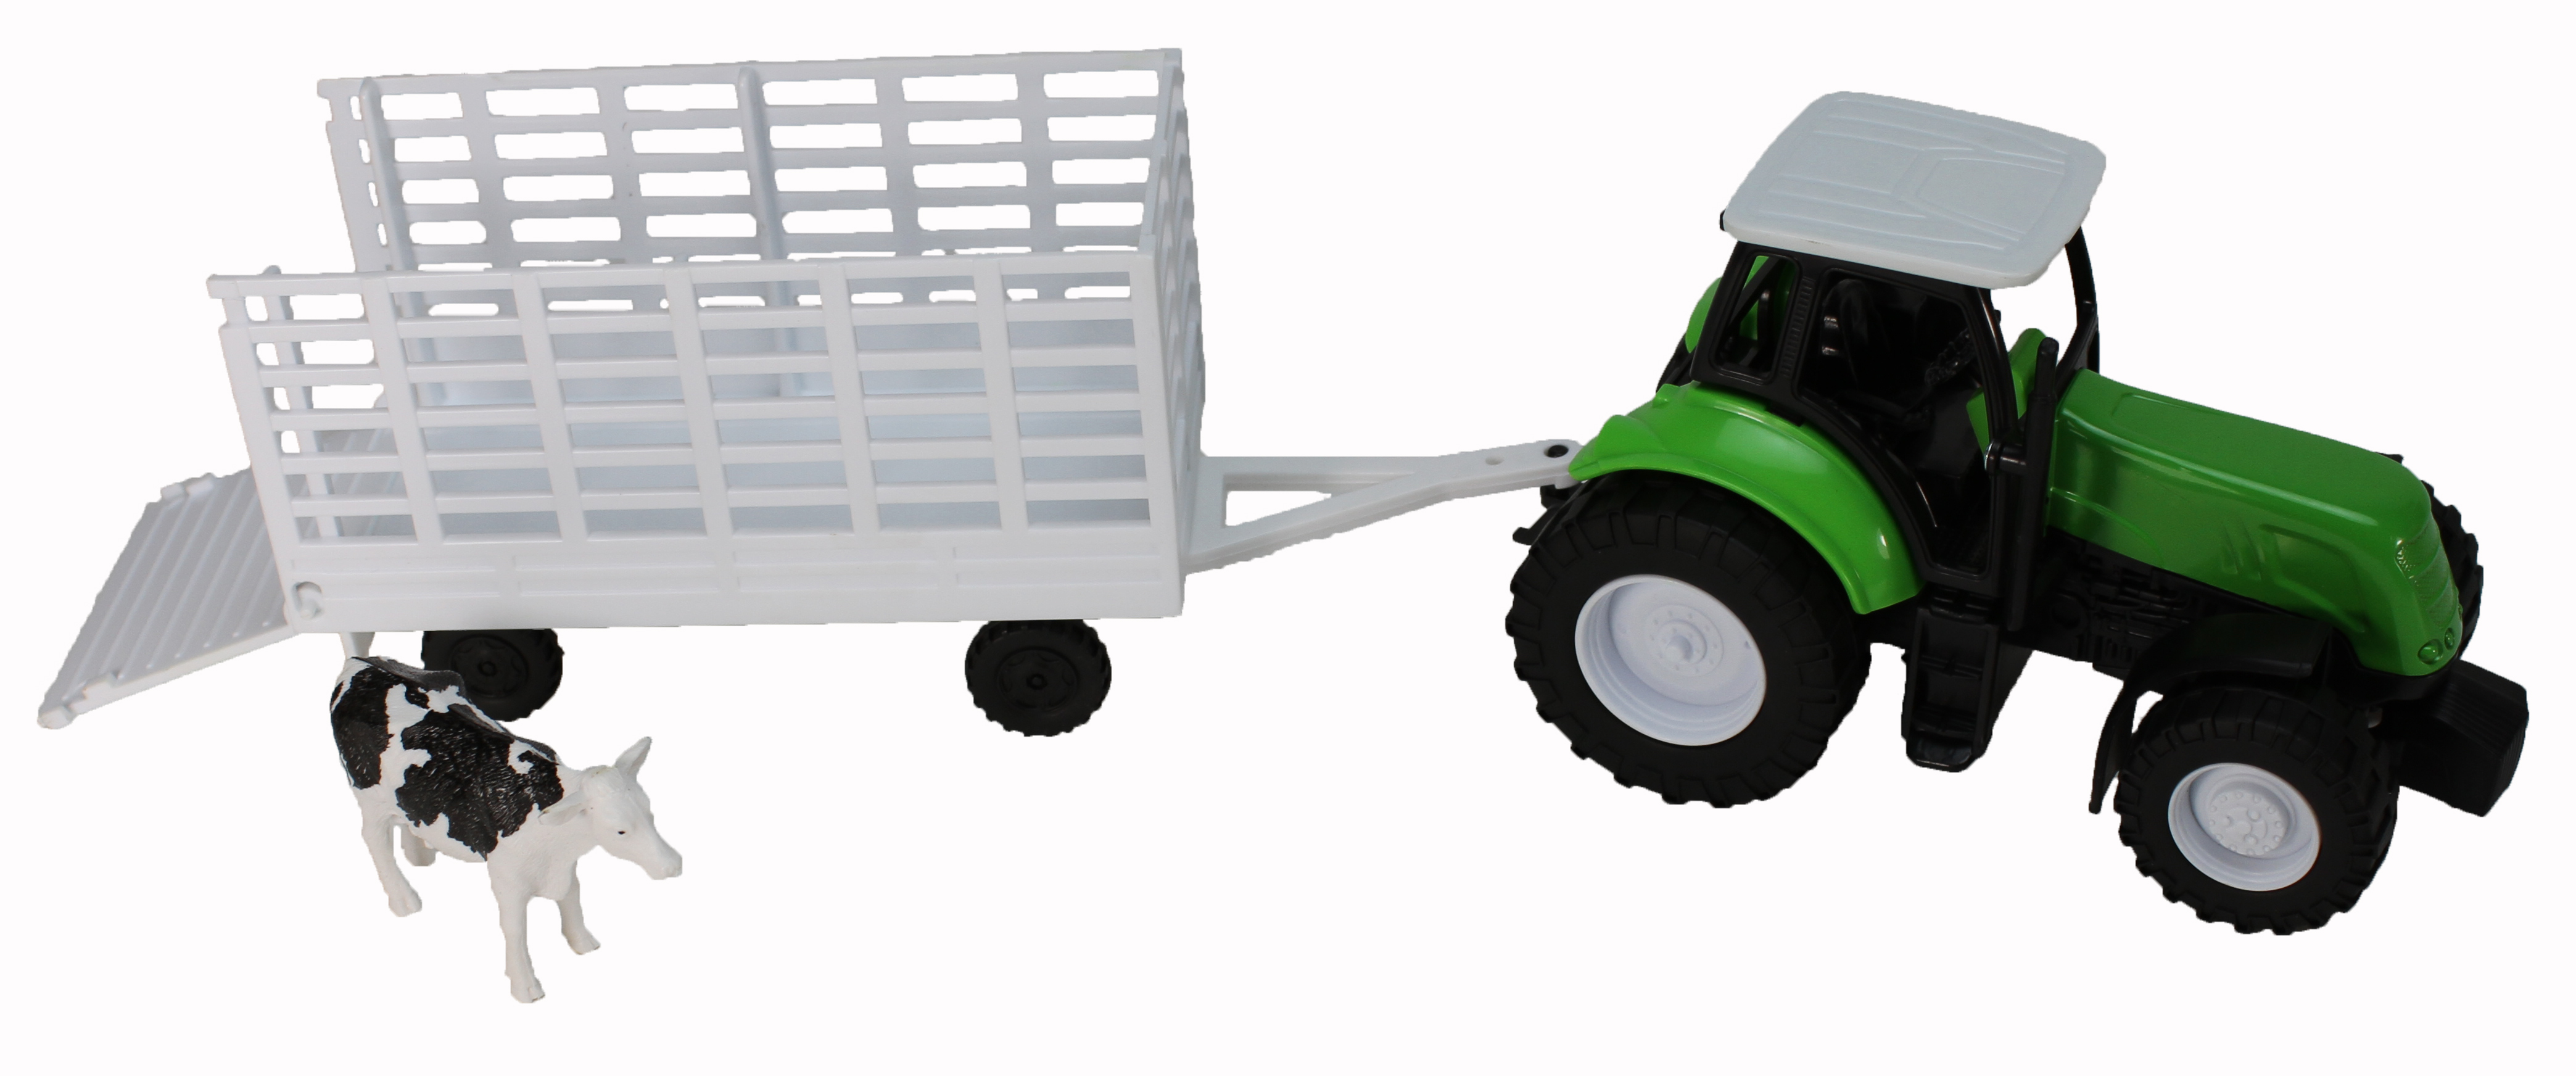 Green Farm Tractor with Attachable Cattle Trailer by NewRay